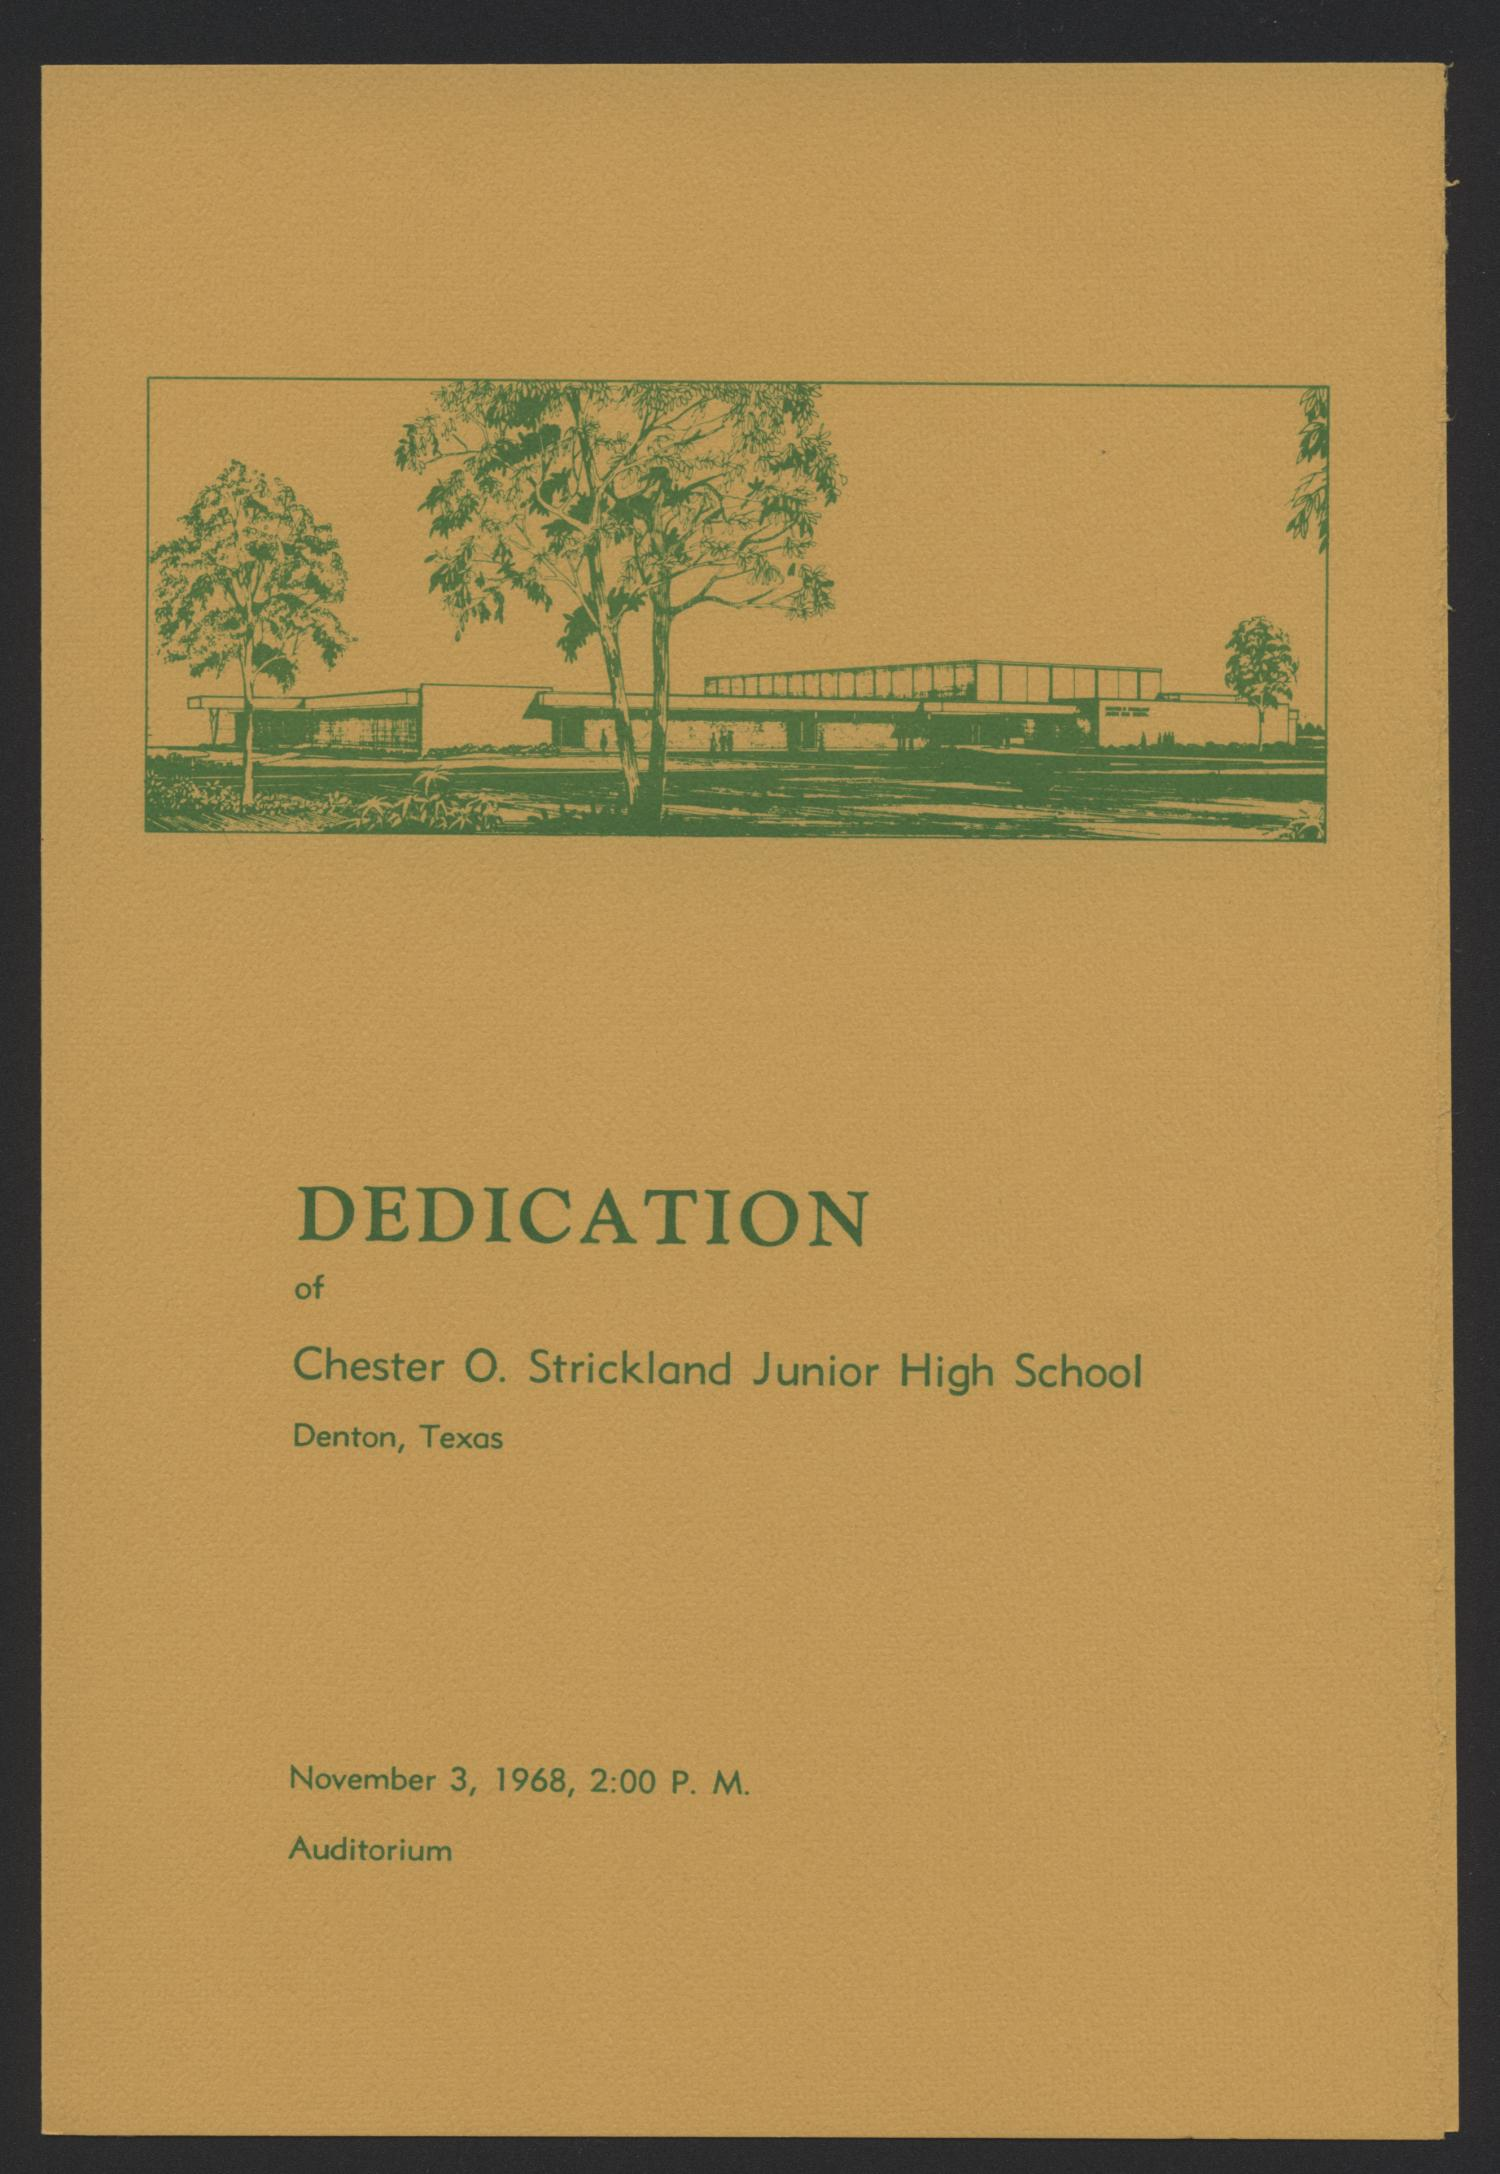 DEDICATION  of Chester O. Strickland Junior High School                                                                                                      [Sequence #]: 1 of 4